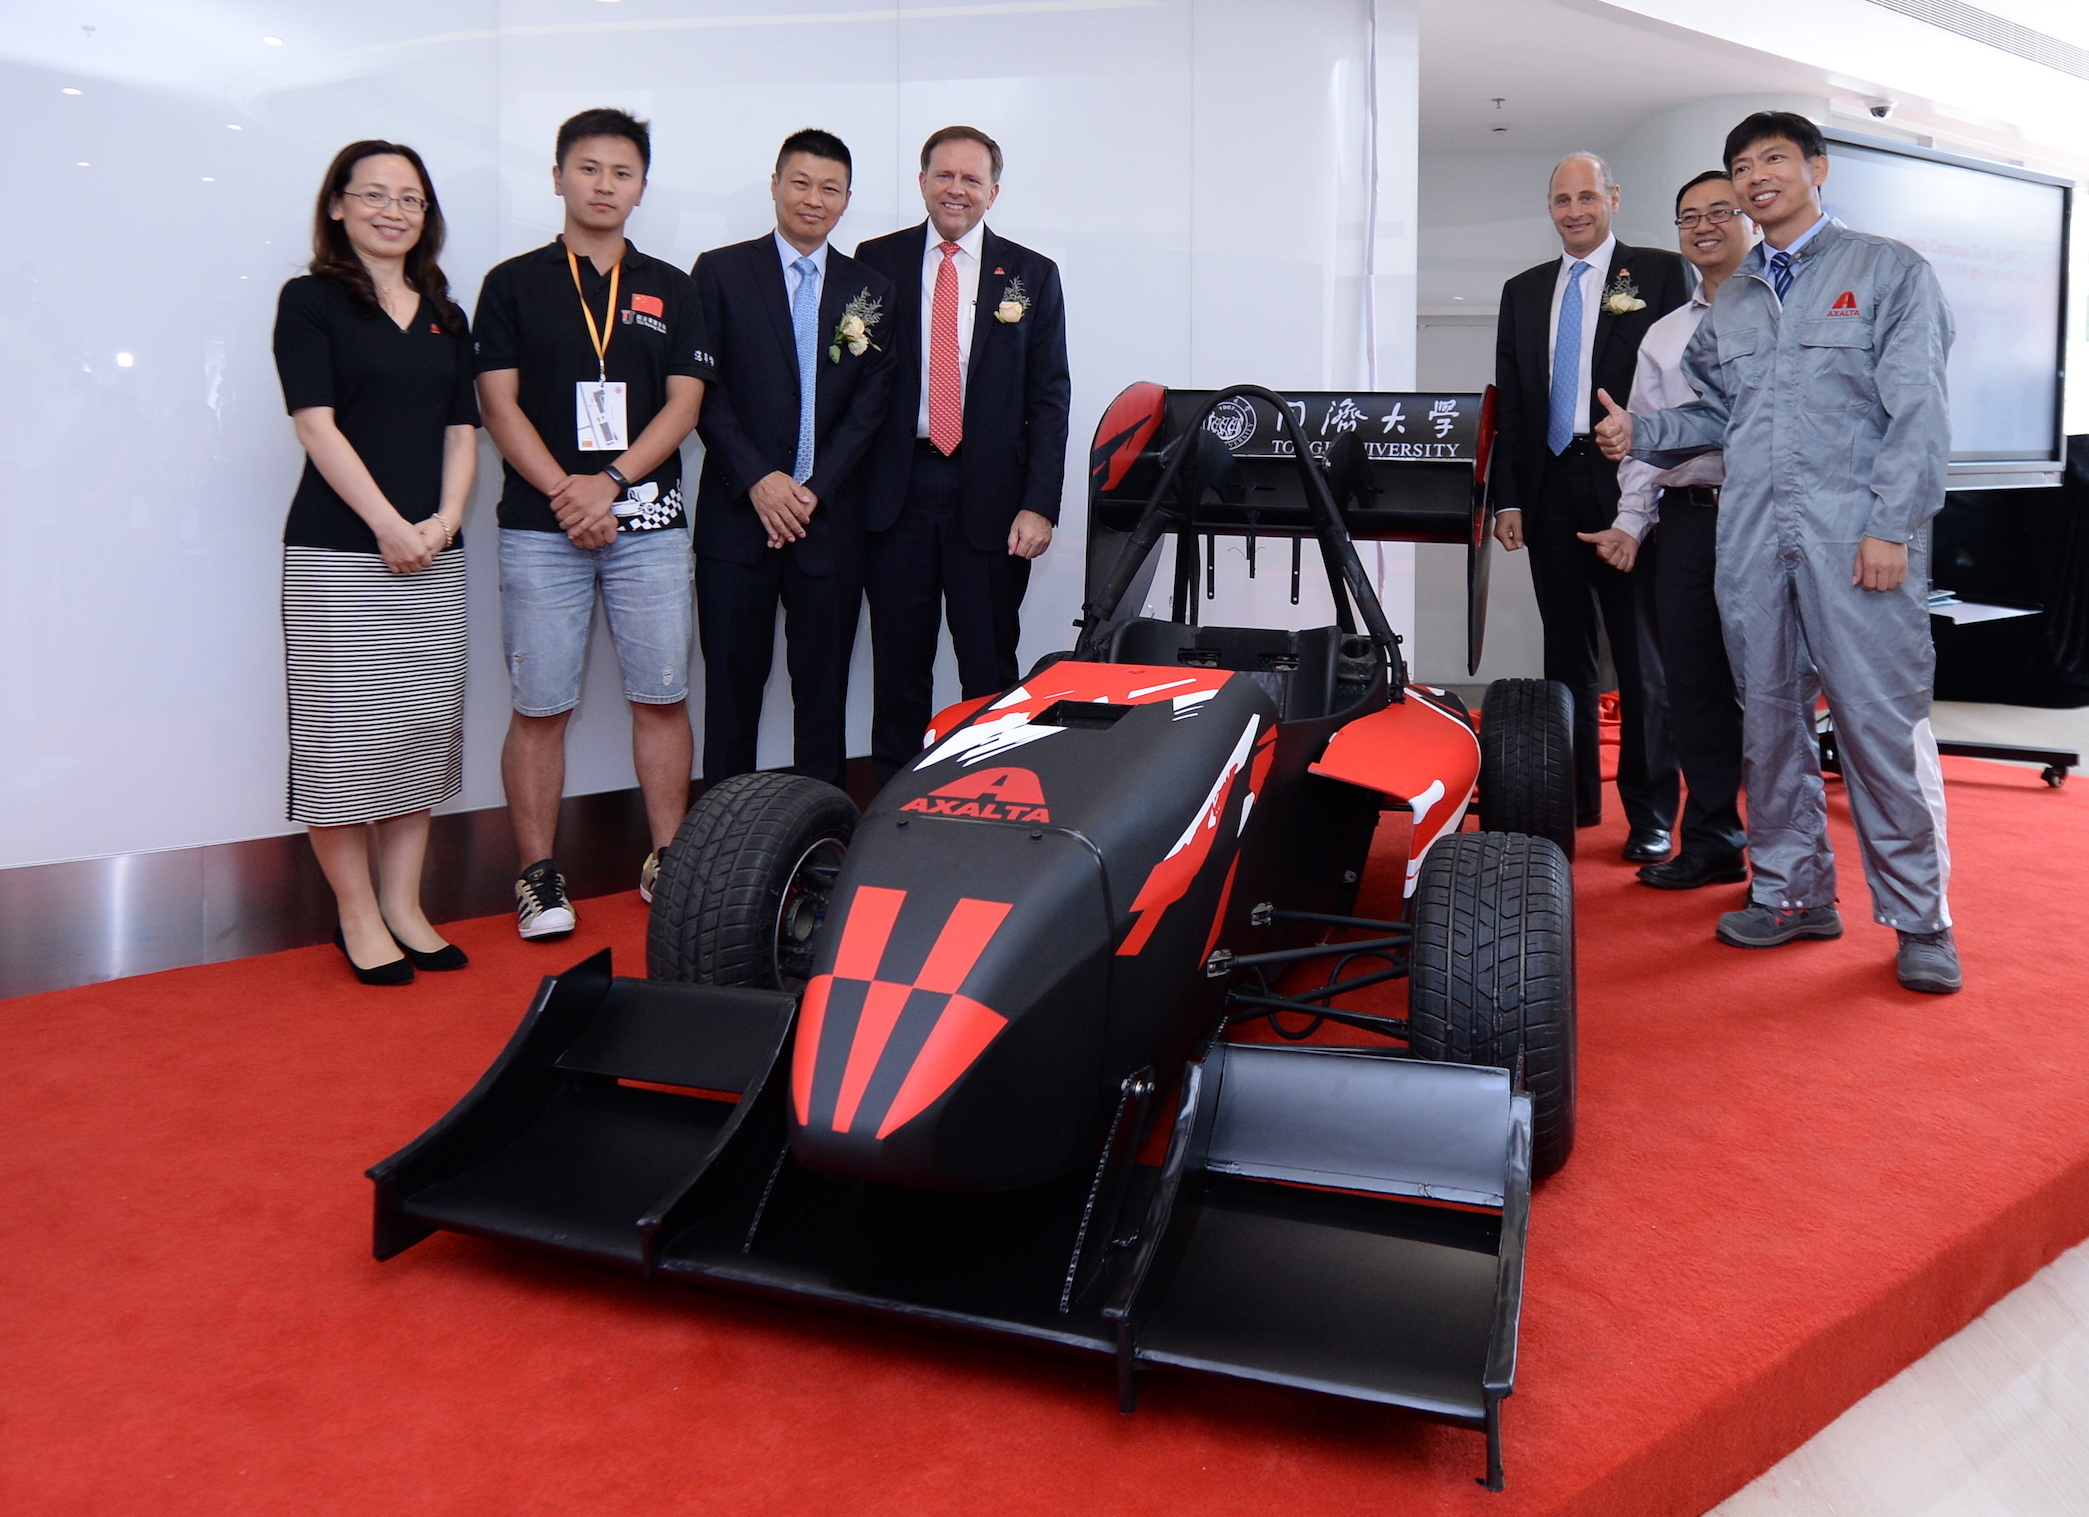 Members of Axalta and Shanghai Tongji University celebrate the university team race car which was painted with Axalta's Spies Hecker® refinish products. (Photo: Axalta)